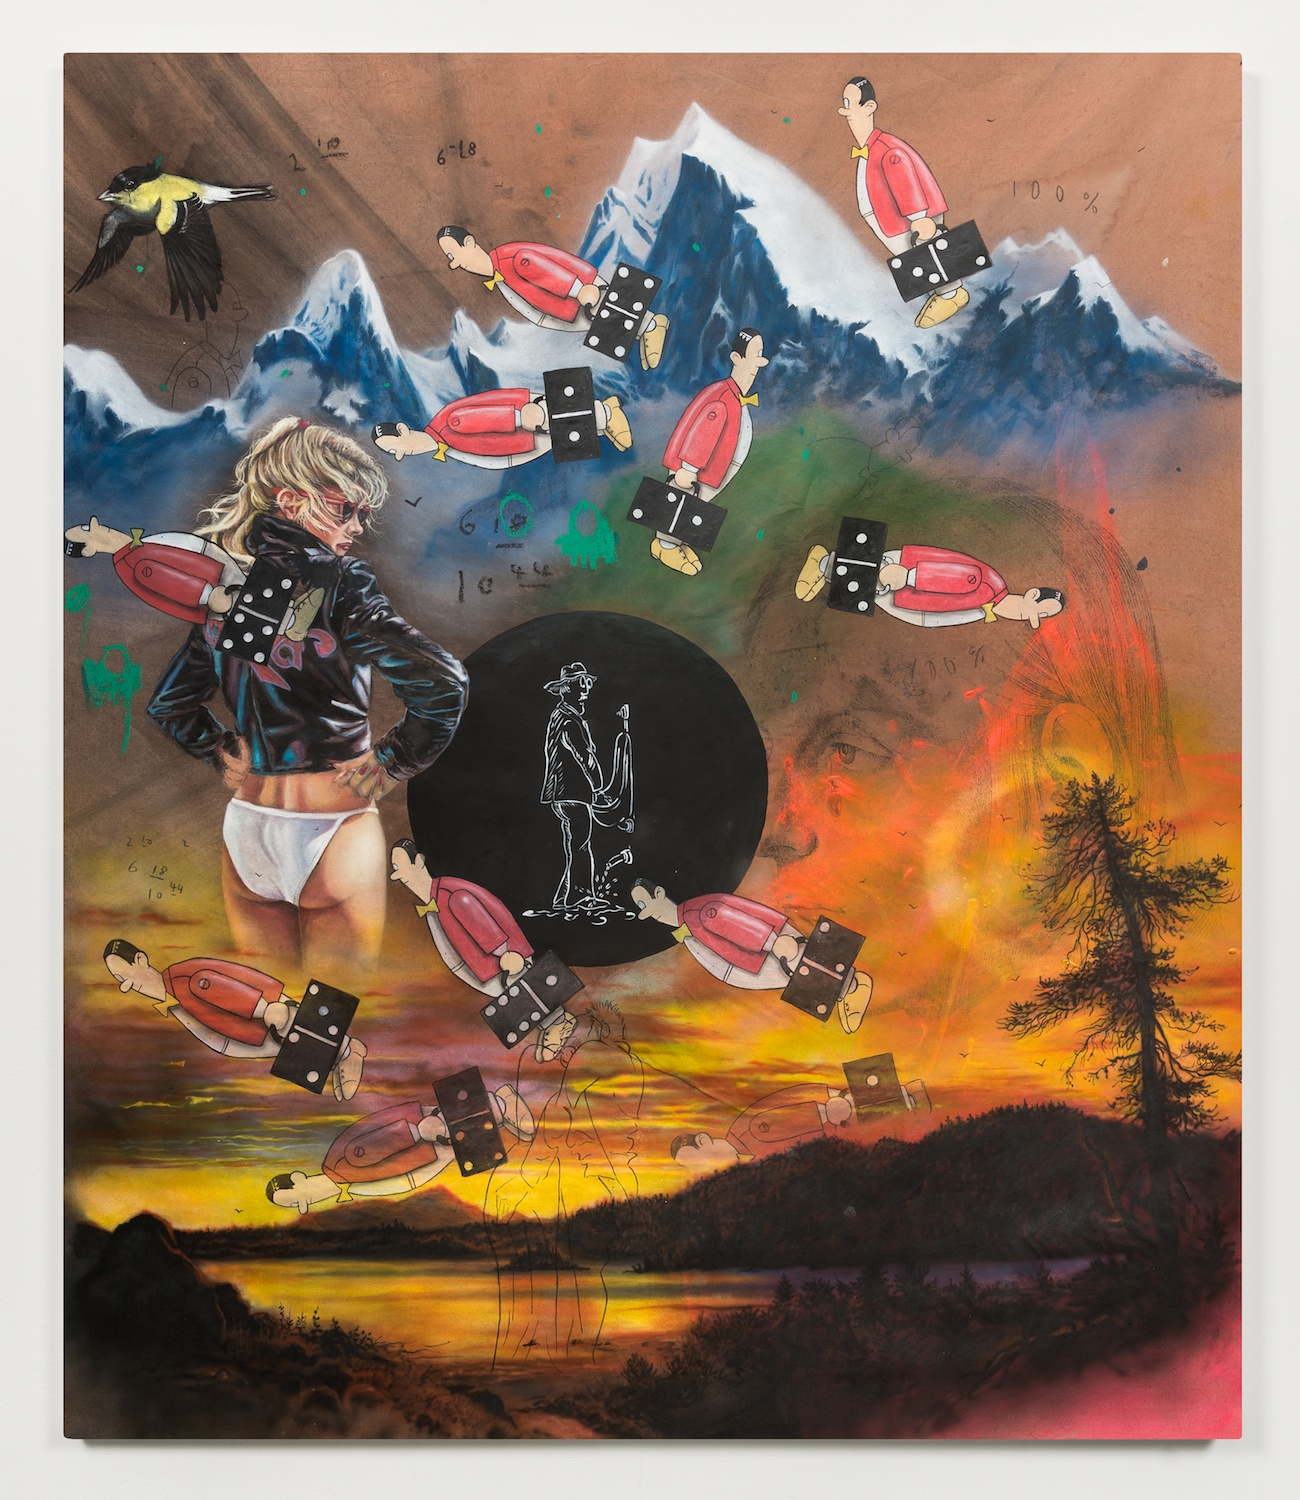 Friedrich Kunath  we go back home to see who we were  2014 Oil, acrylic, ink, and pencil 45 ½h x 41 ½w in FK001